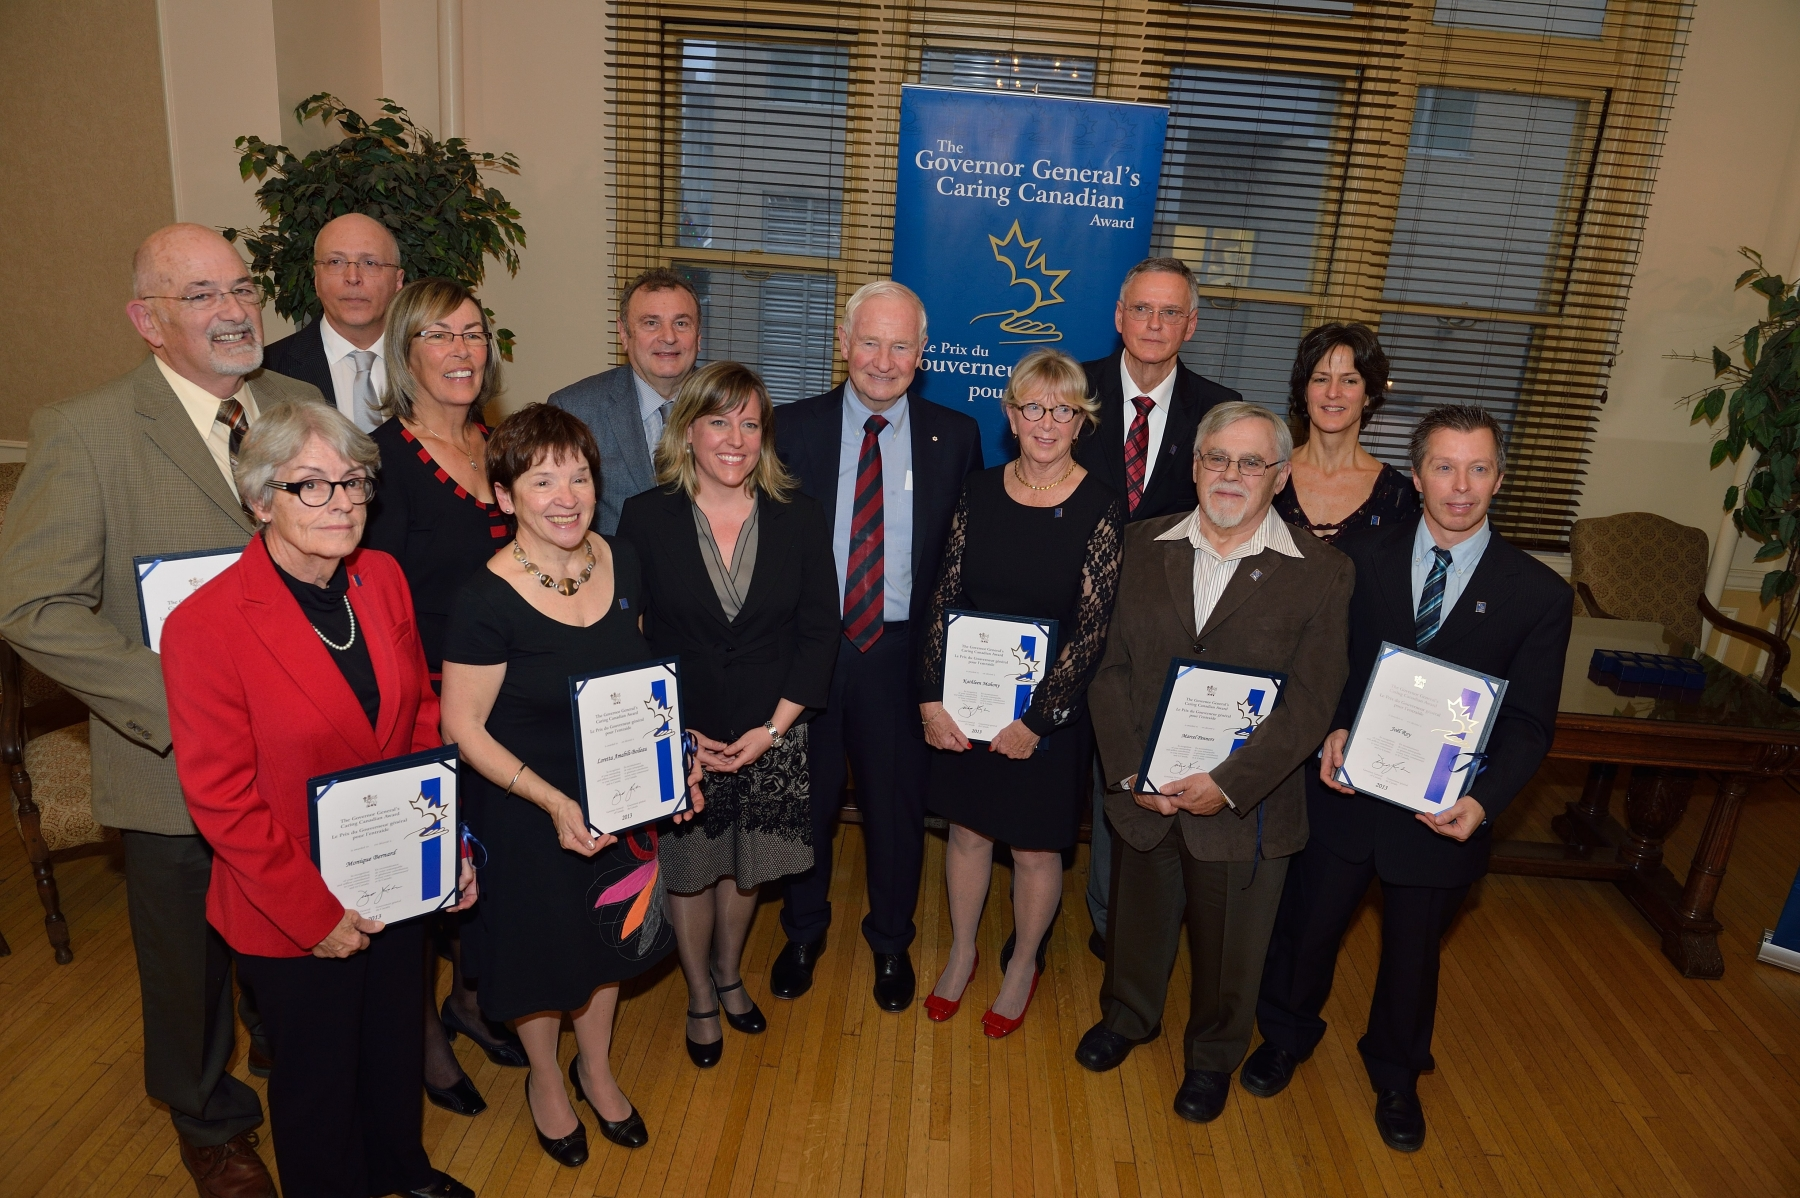 On November 26, 2013, His Excellency was at the Centre hospitalier de l'Université de Montréal to present the Governor General's Caring Canadian Award to 10 volunteers of the PalliAmi Foundation working alongside end-of-life patients at the Palliative Care Unit of Hôpital Notre-Dame.